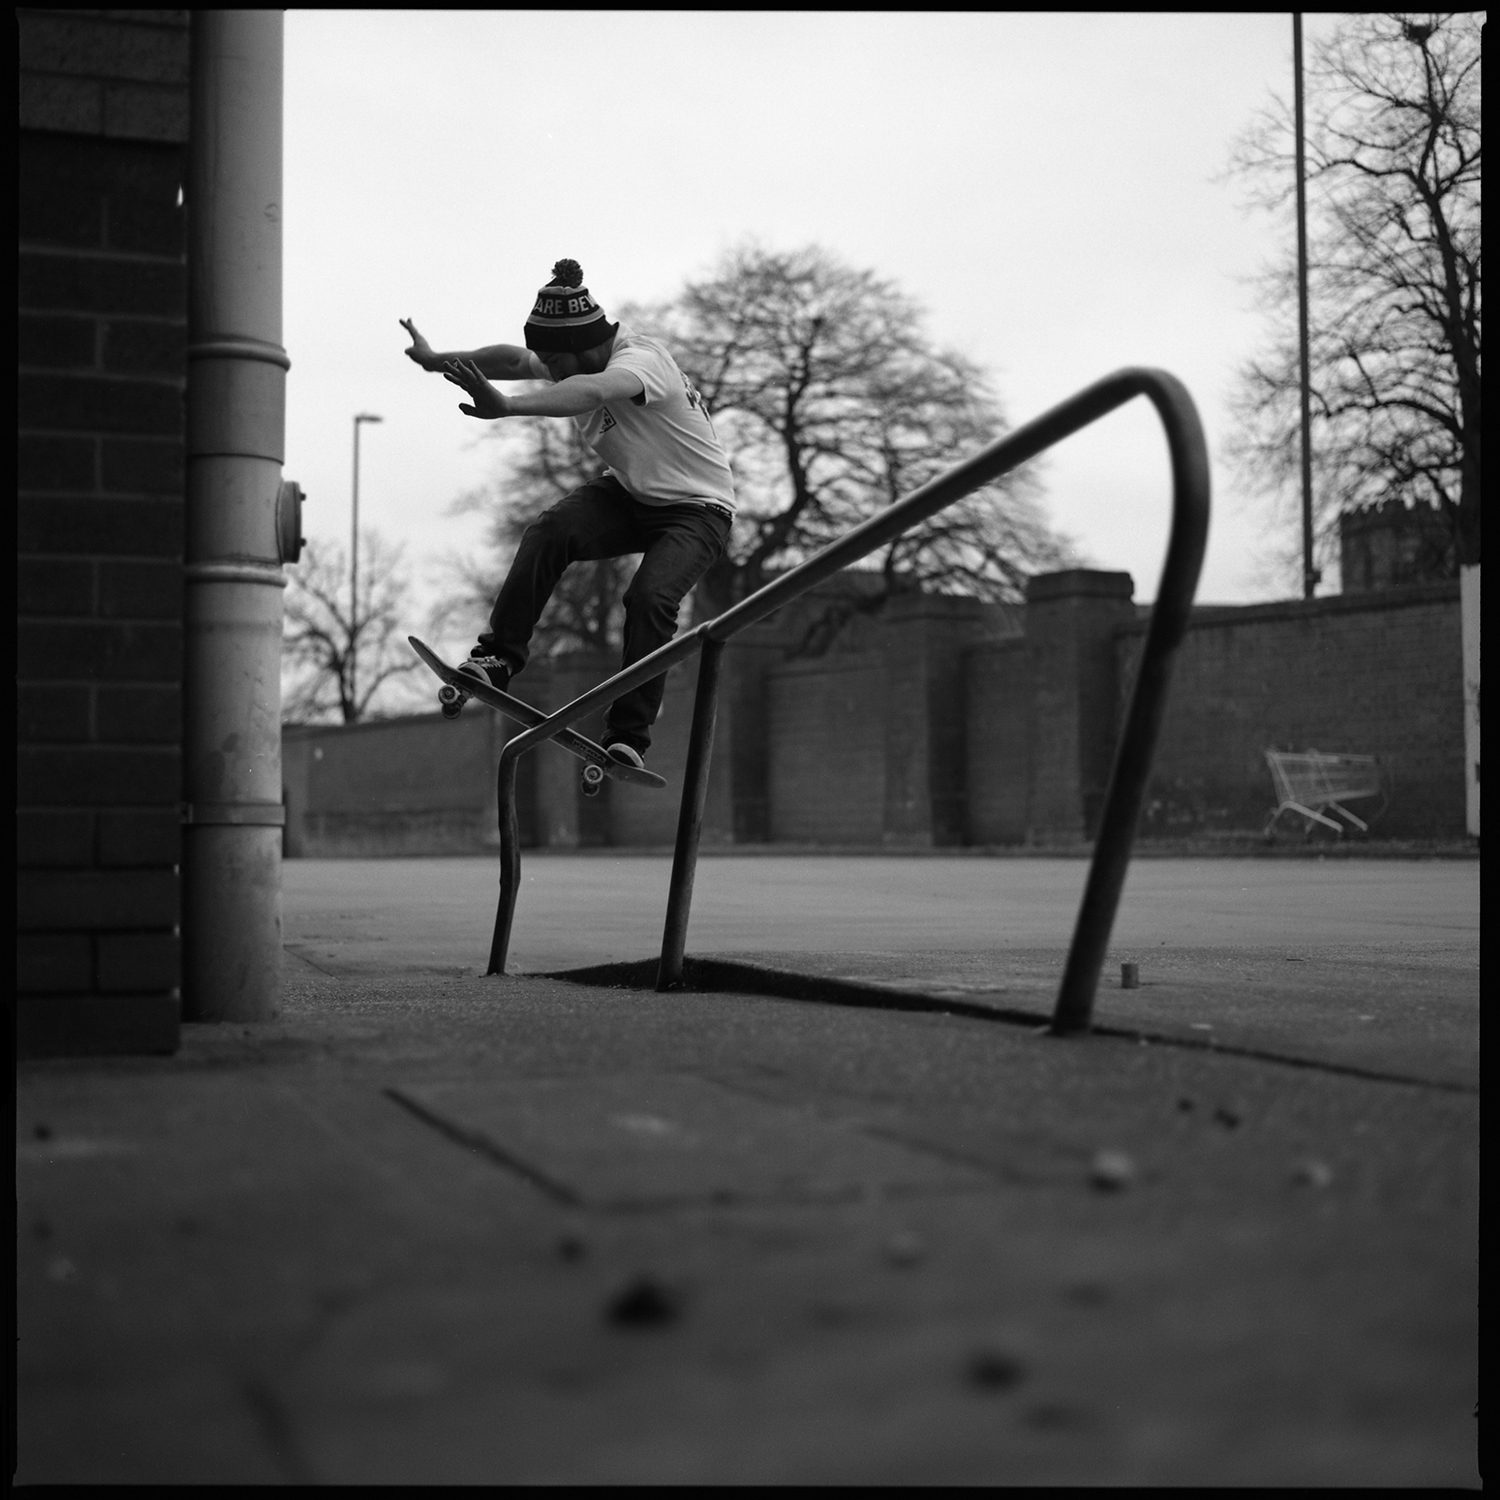 Skate documentary photography shot on black and white film ilford